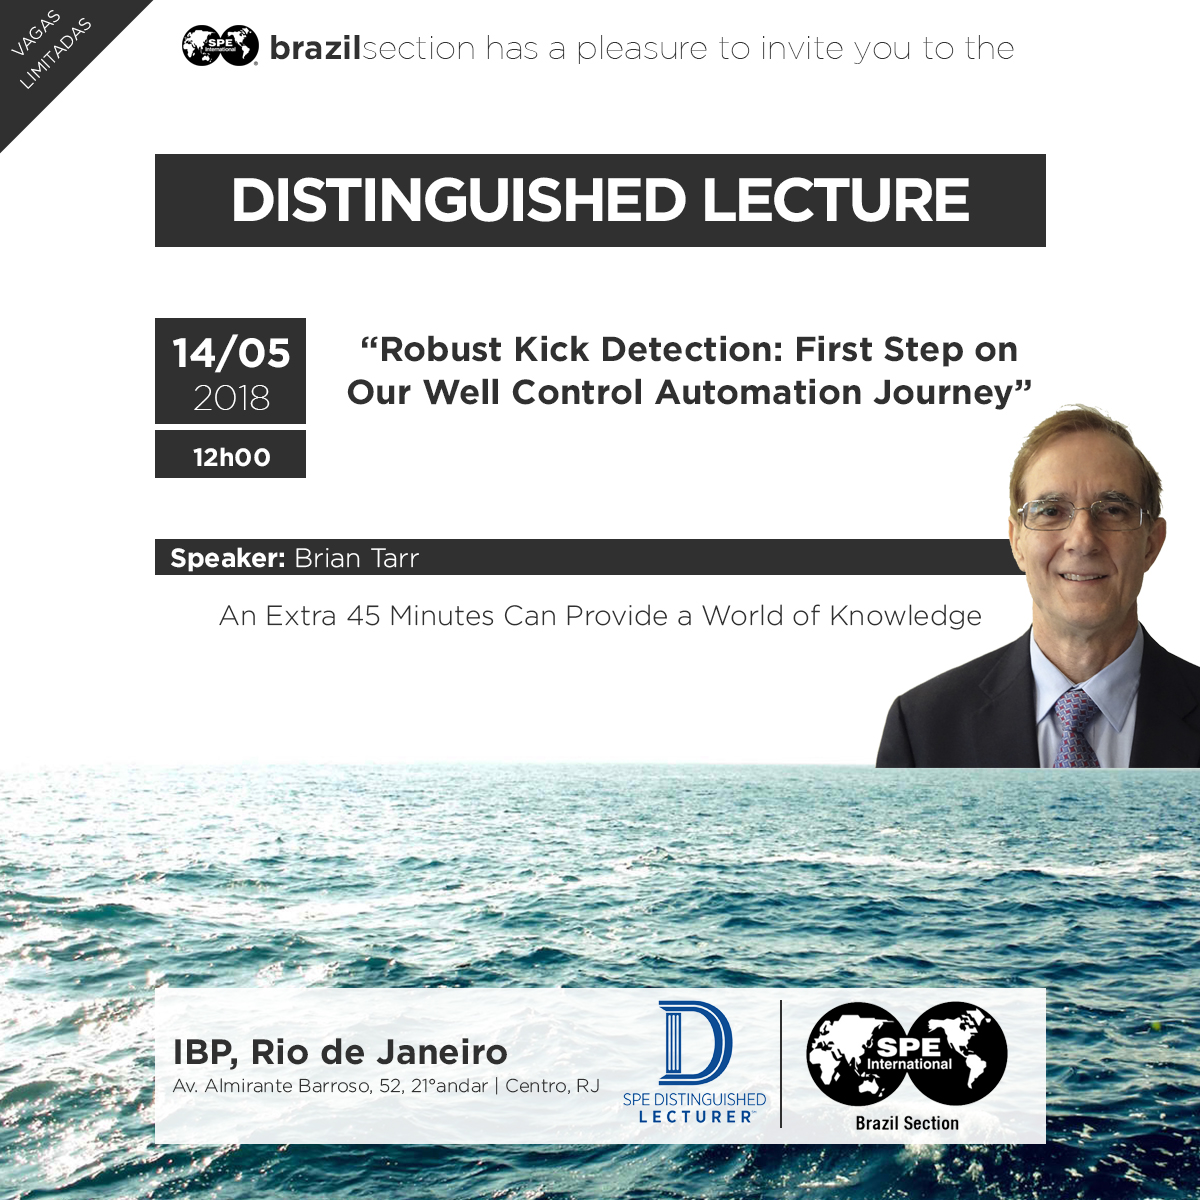 DISTINGUISHED LECTURER: 'Robust Kick Detection: First Step on Our Well Control Automation Journey'